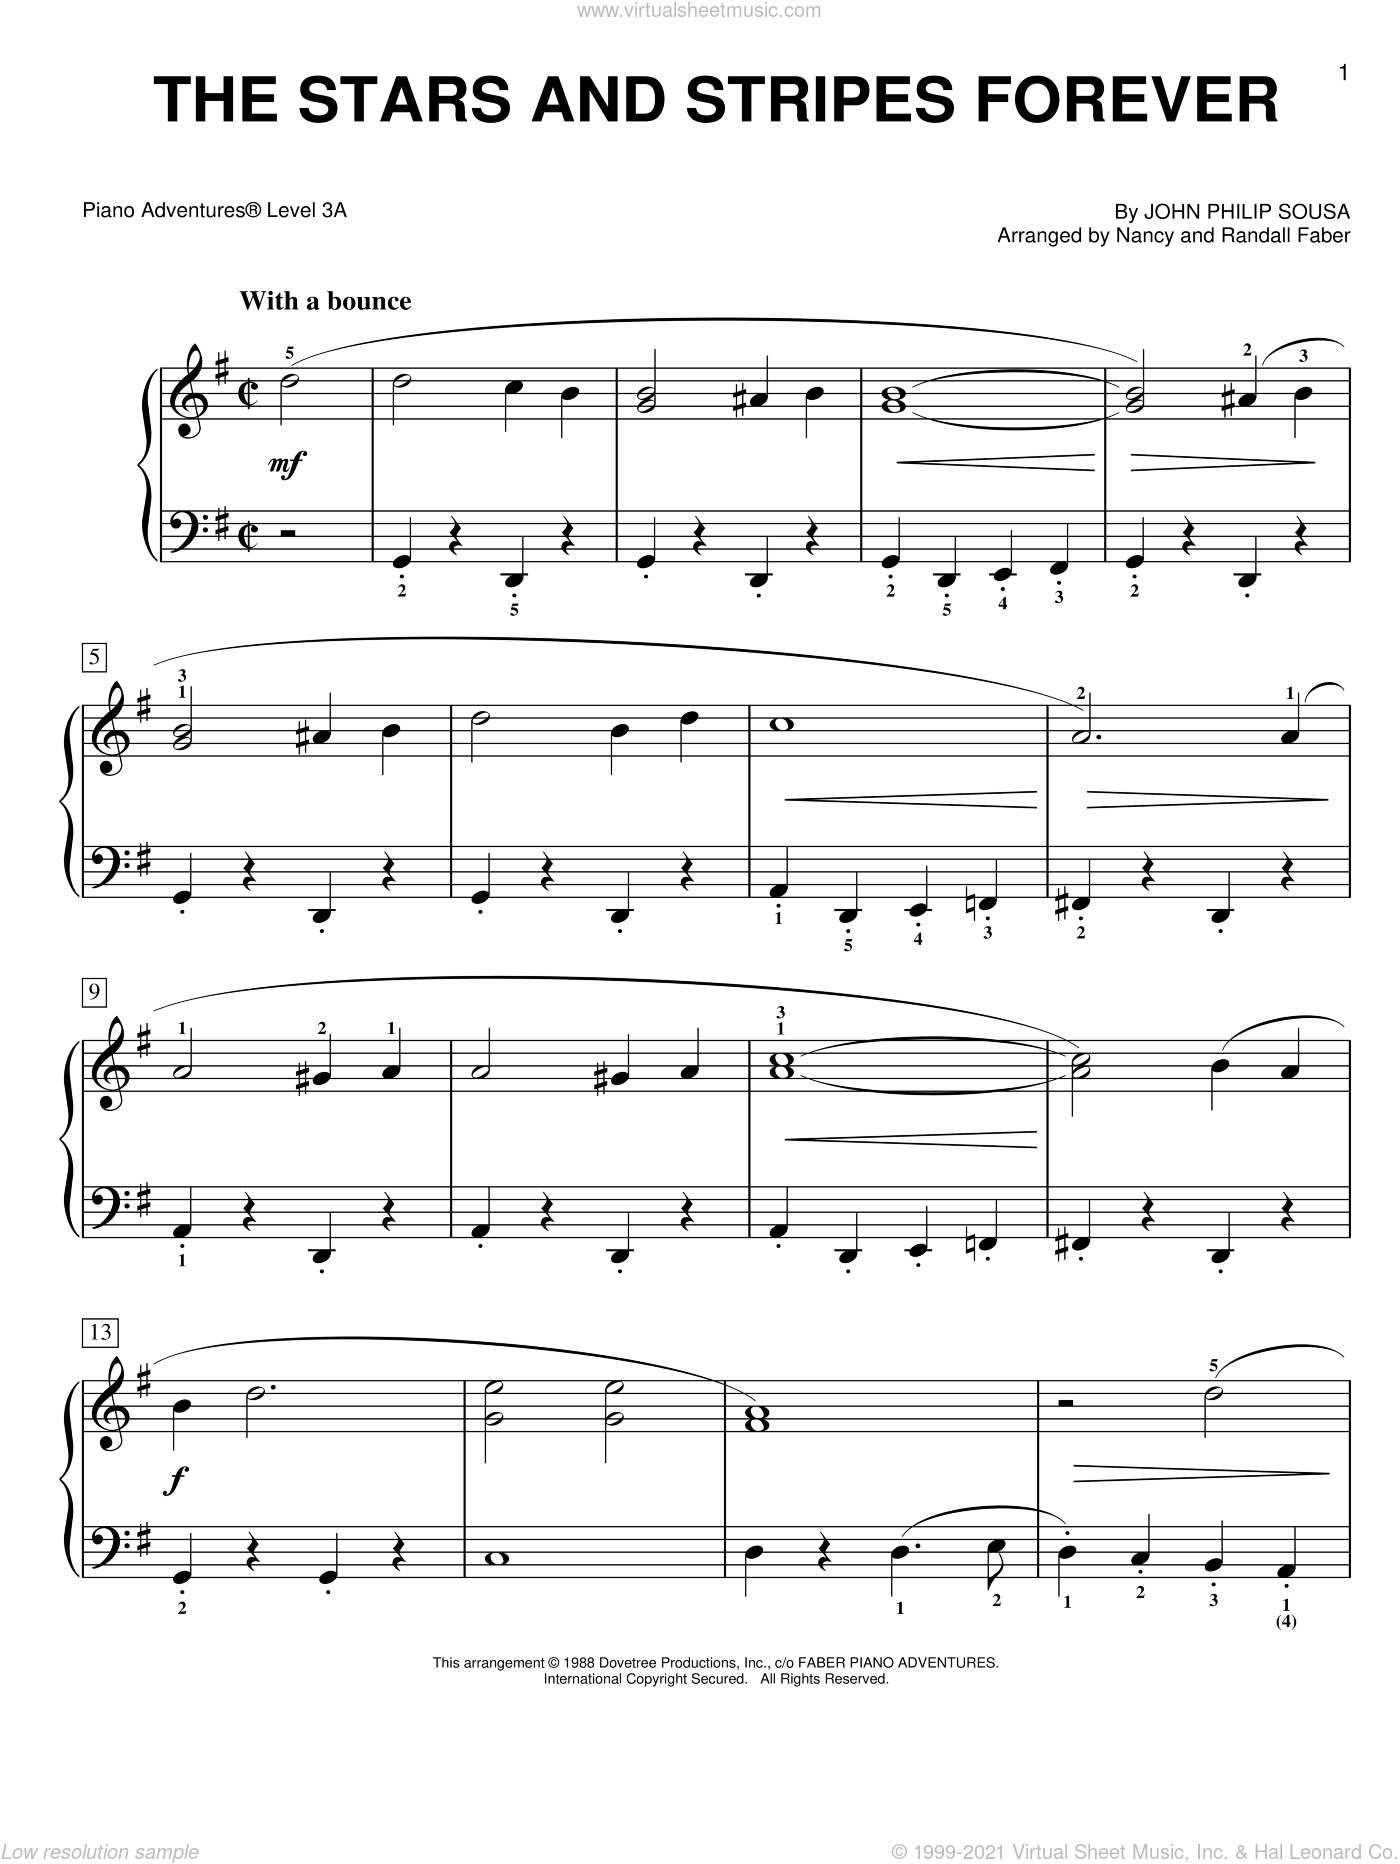 The Stars and Stripes Forever sheet music for piano solo by John Philip Sousa and Nancy and Randall Faber, intermediate/advanced skill level